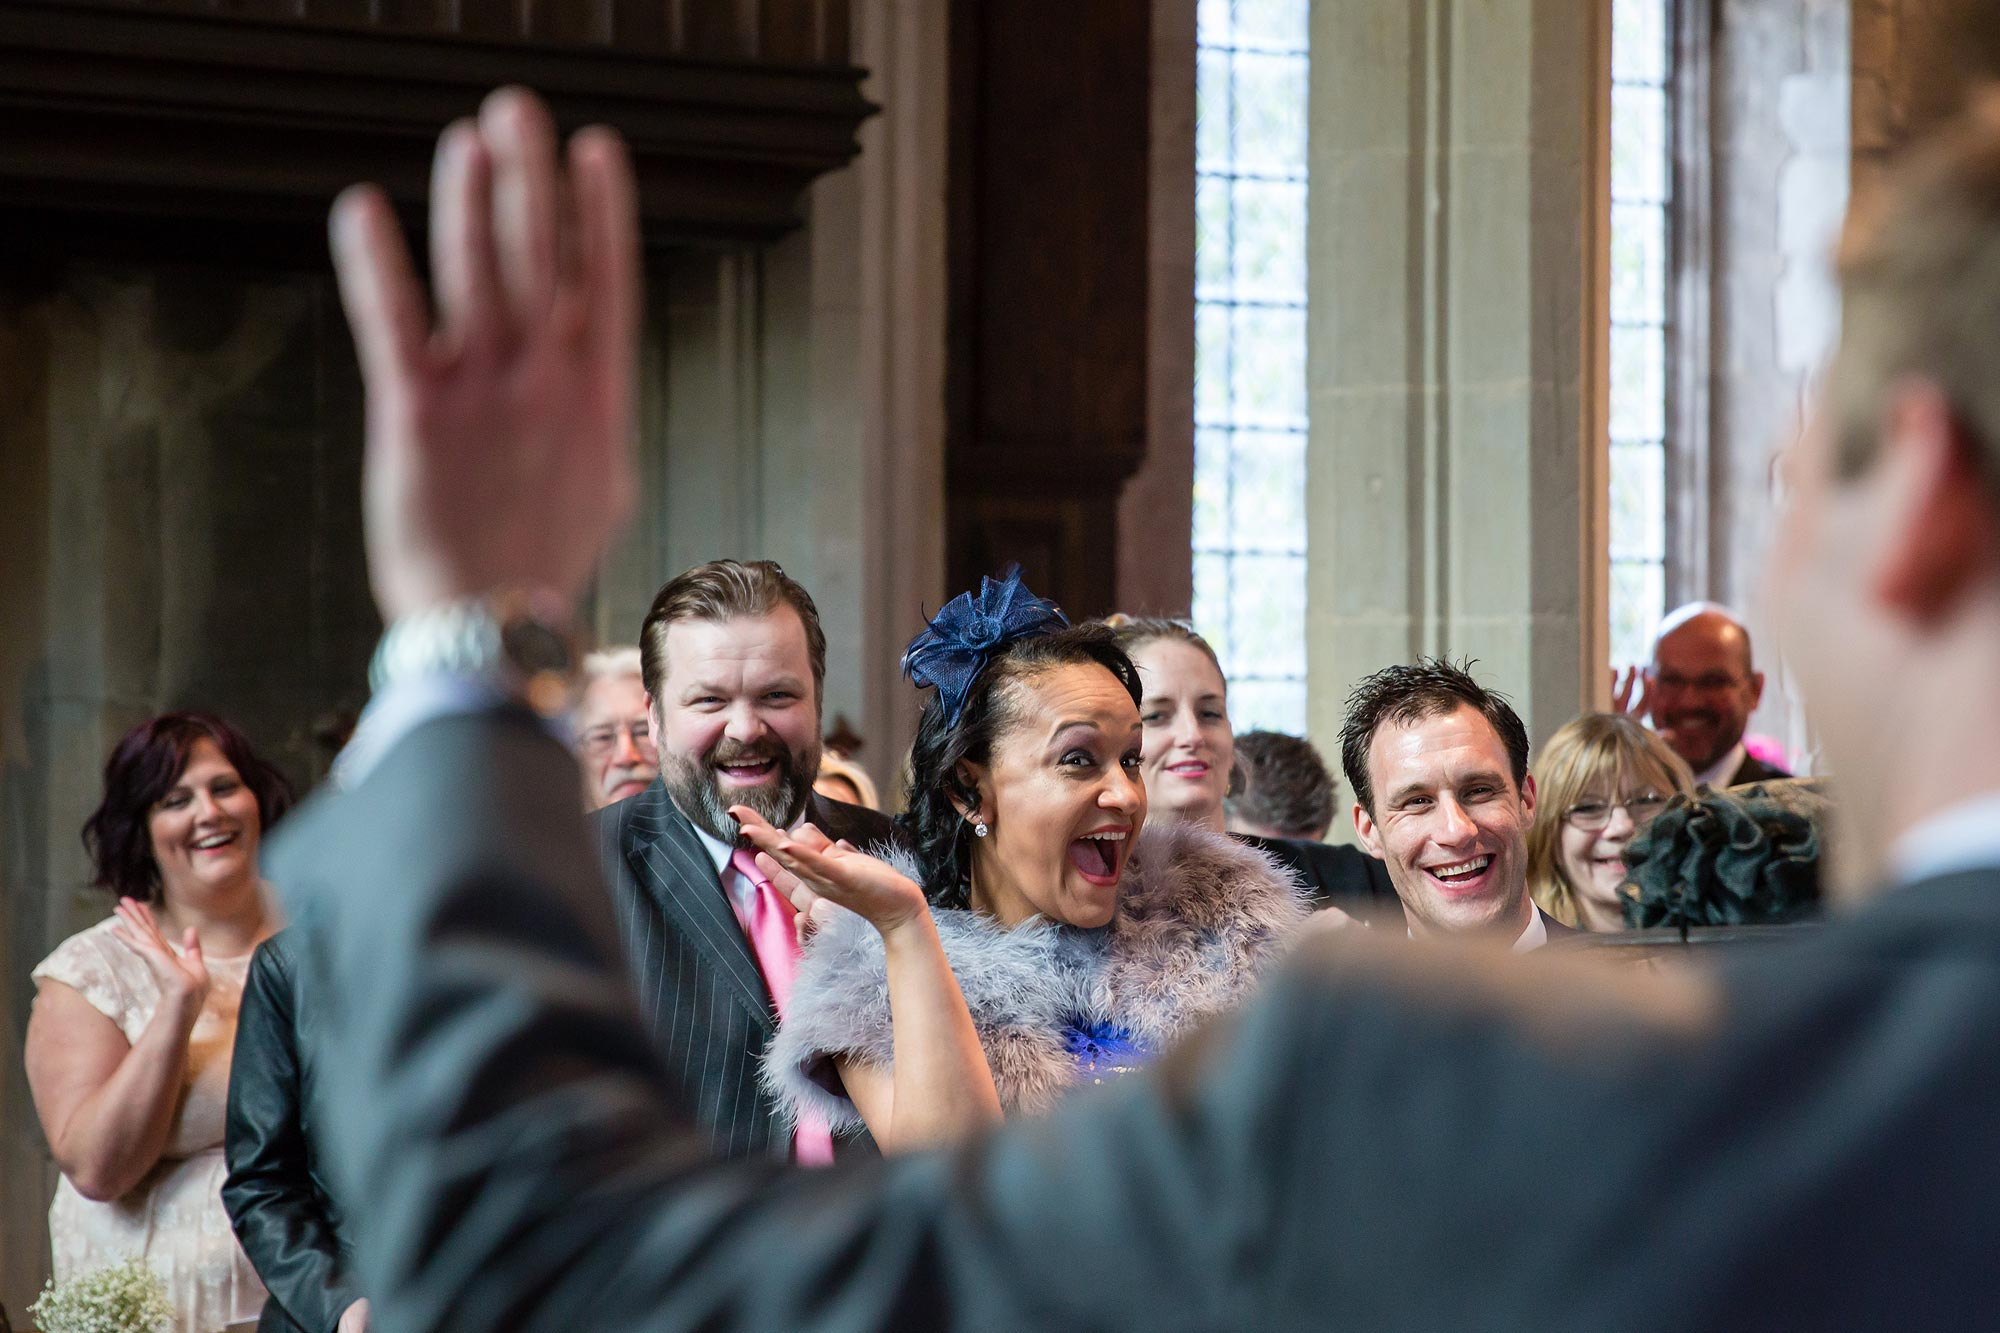 Guests wave during the Hengrave Hall wedding